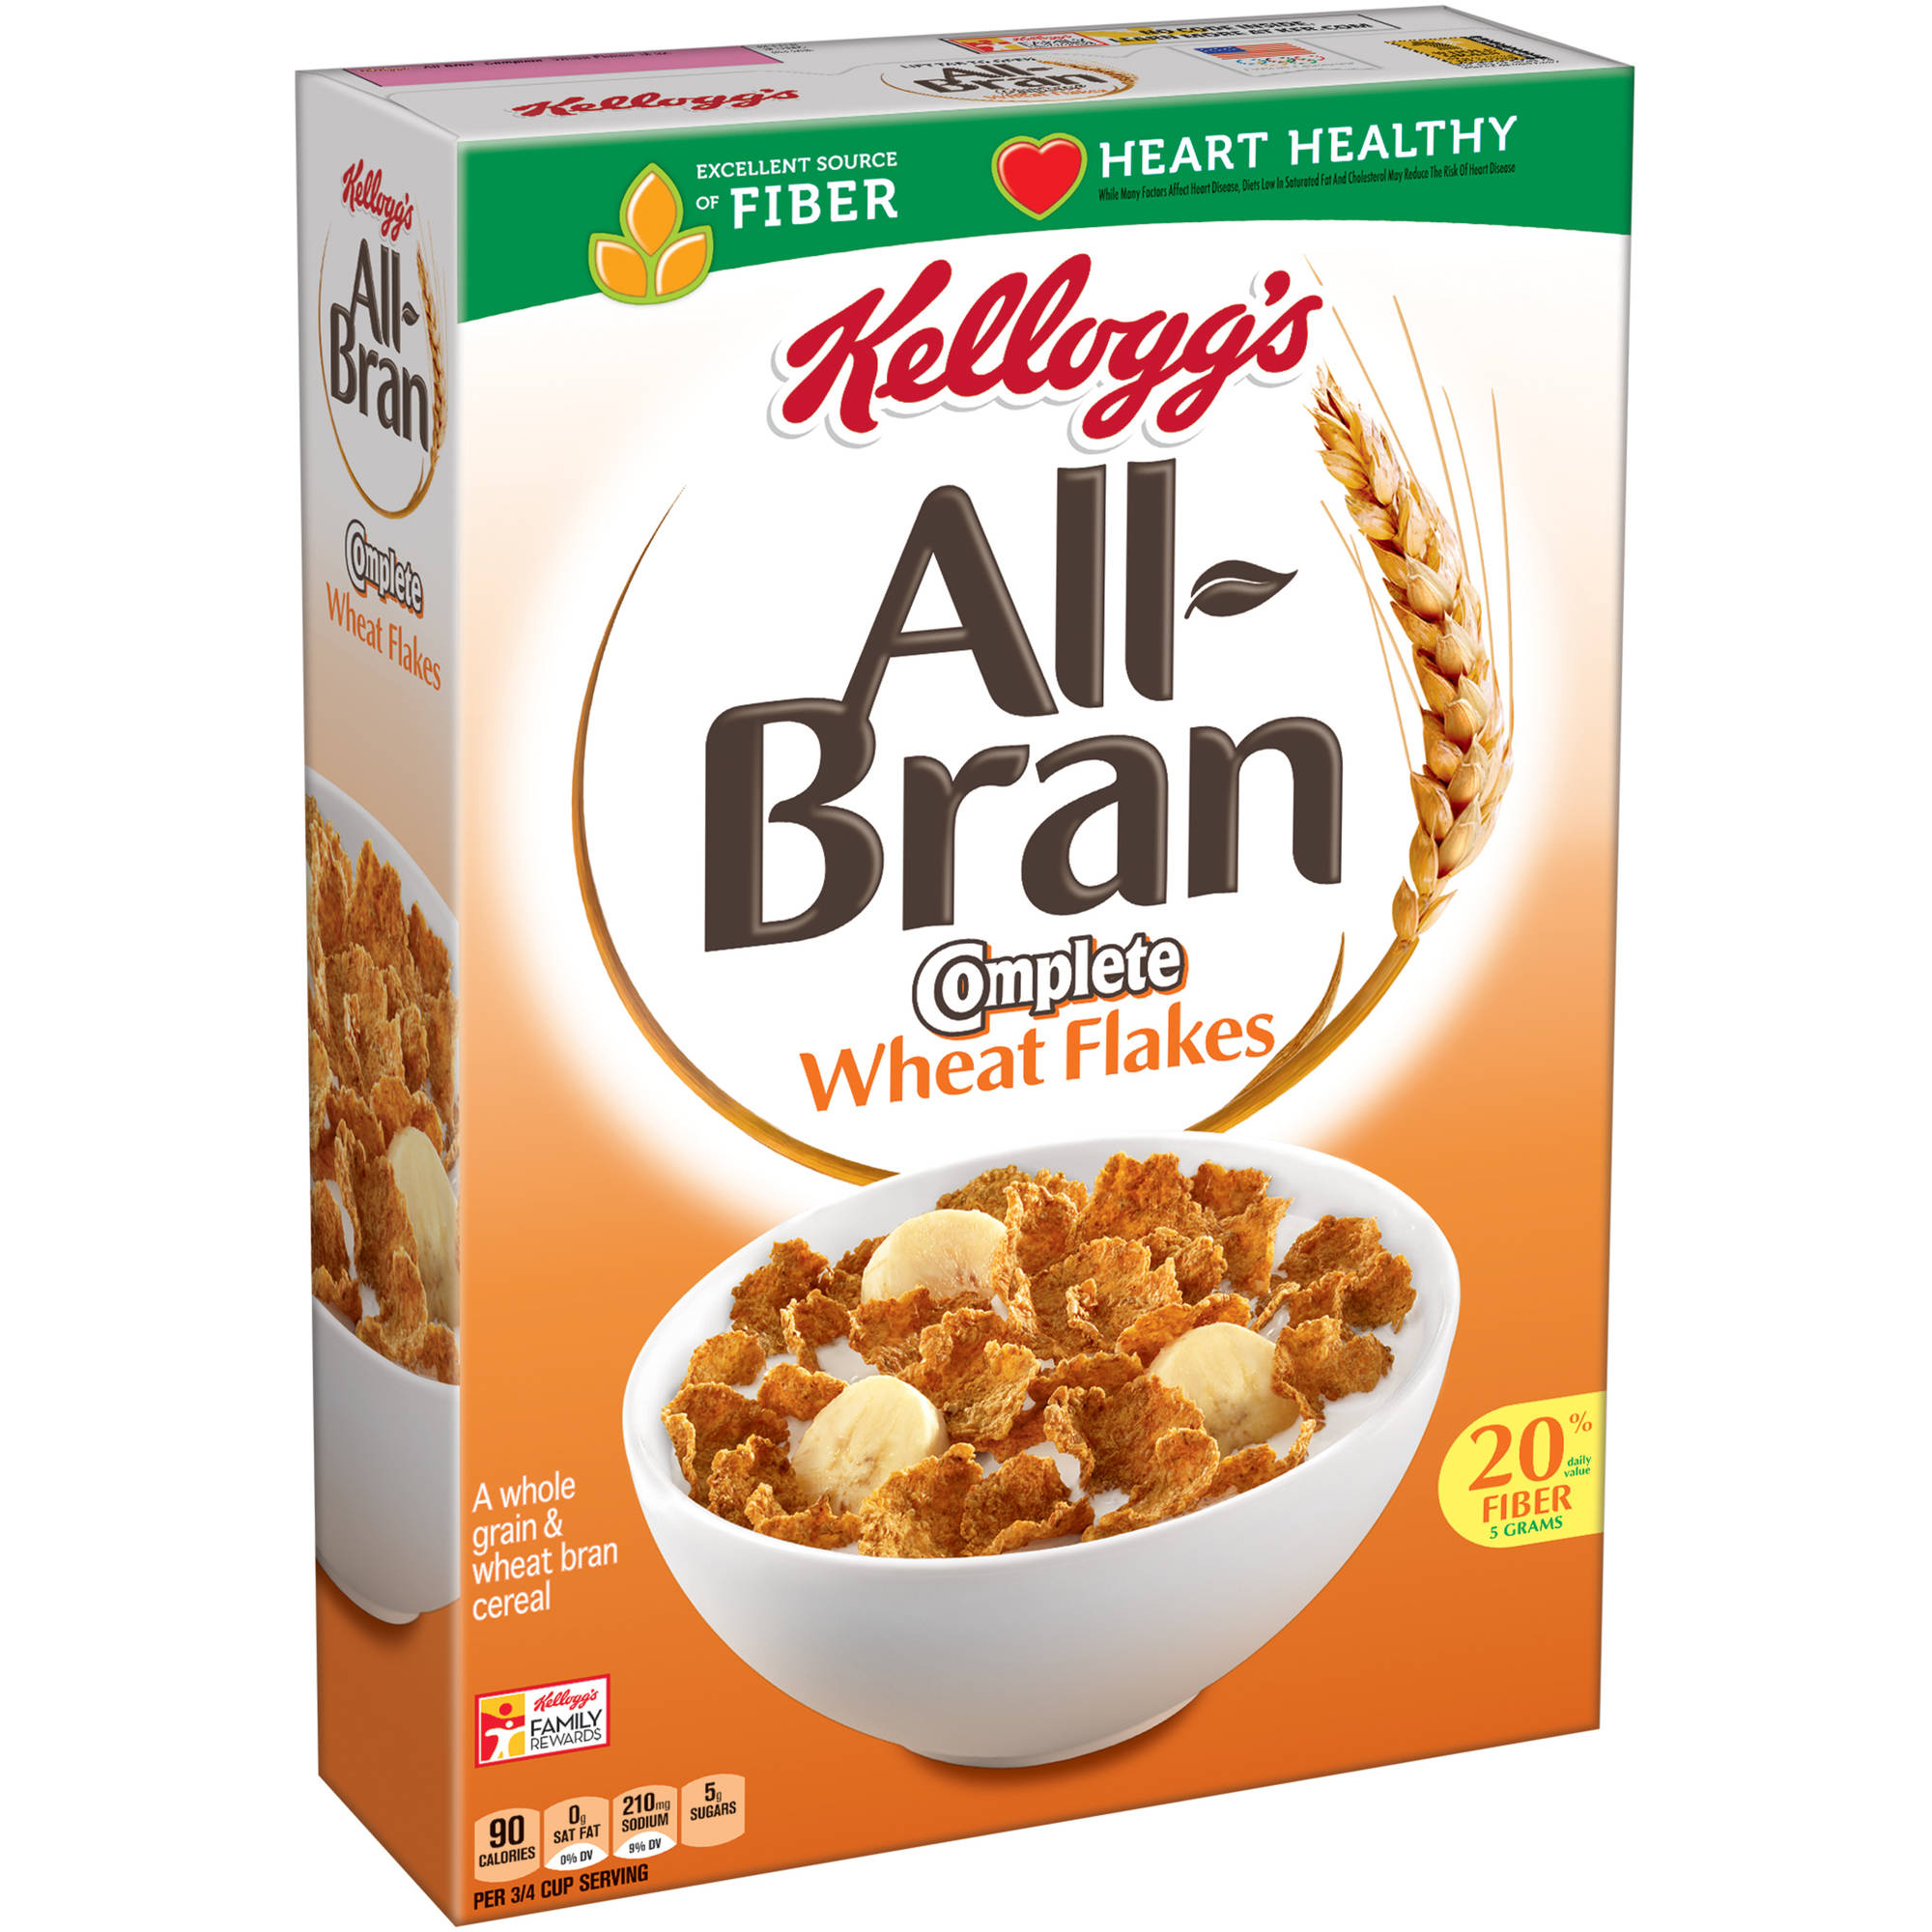 Kellogg's All-Bran Complete Wheat Flakes Cereal, 18 oz